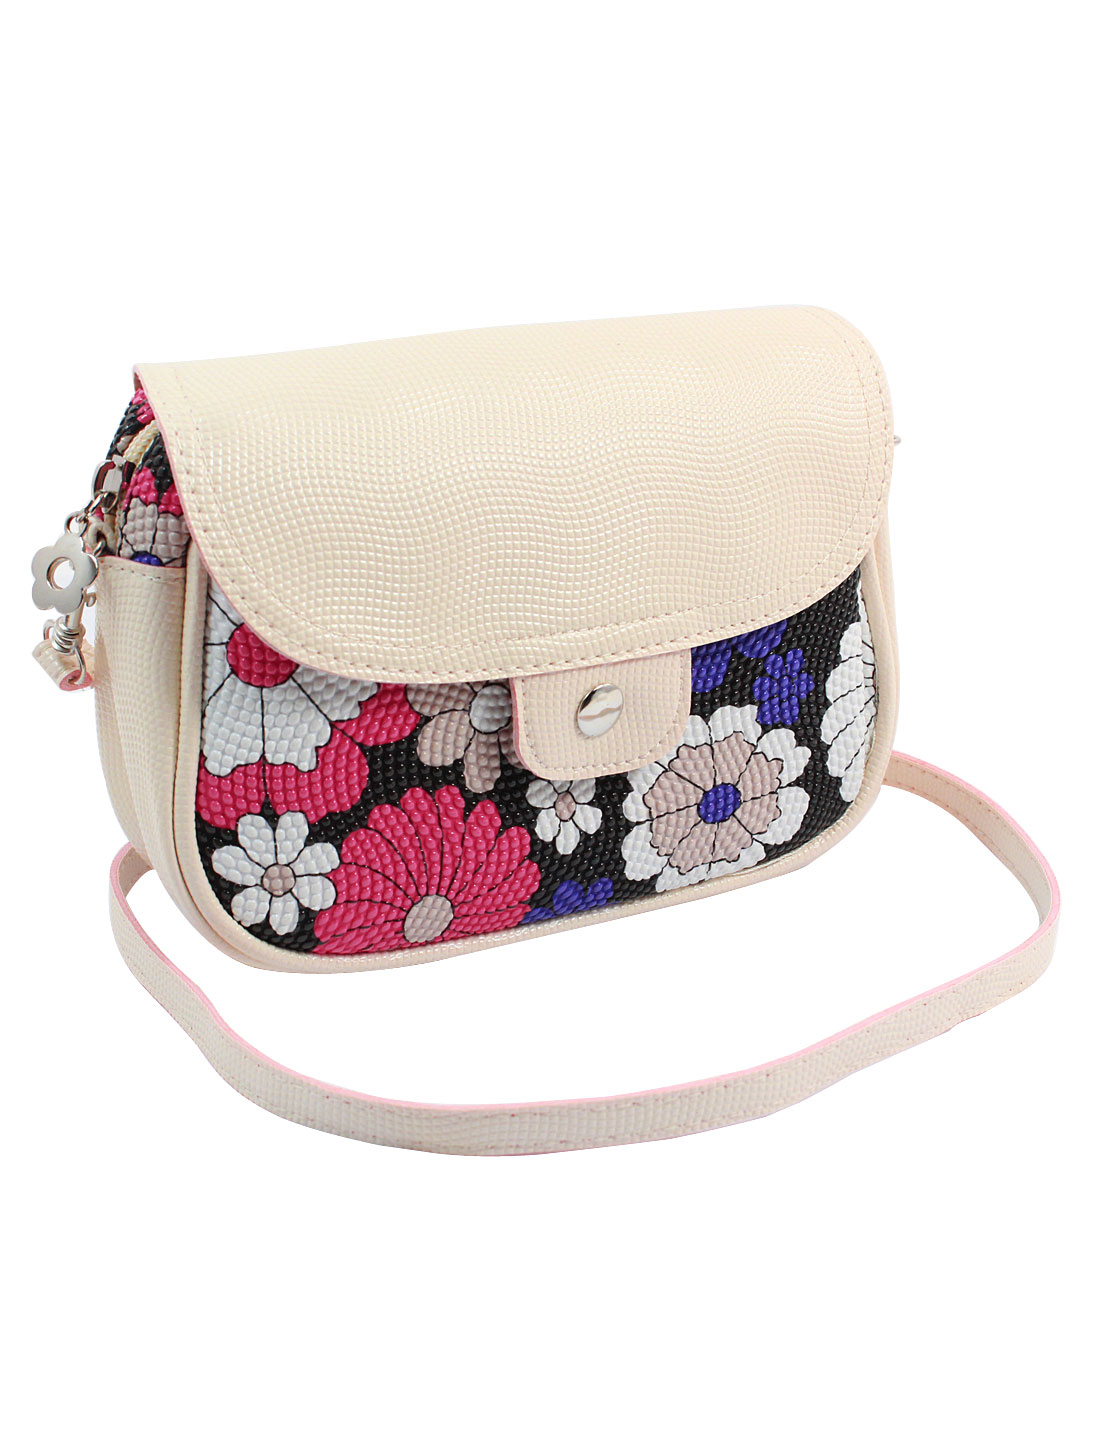 Women 2 Pockets Magnet Button Zipper Closure Floral Print Faux Leather Wallet Purse Bag Black White Red w Shoulder Strap